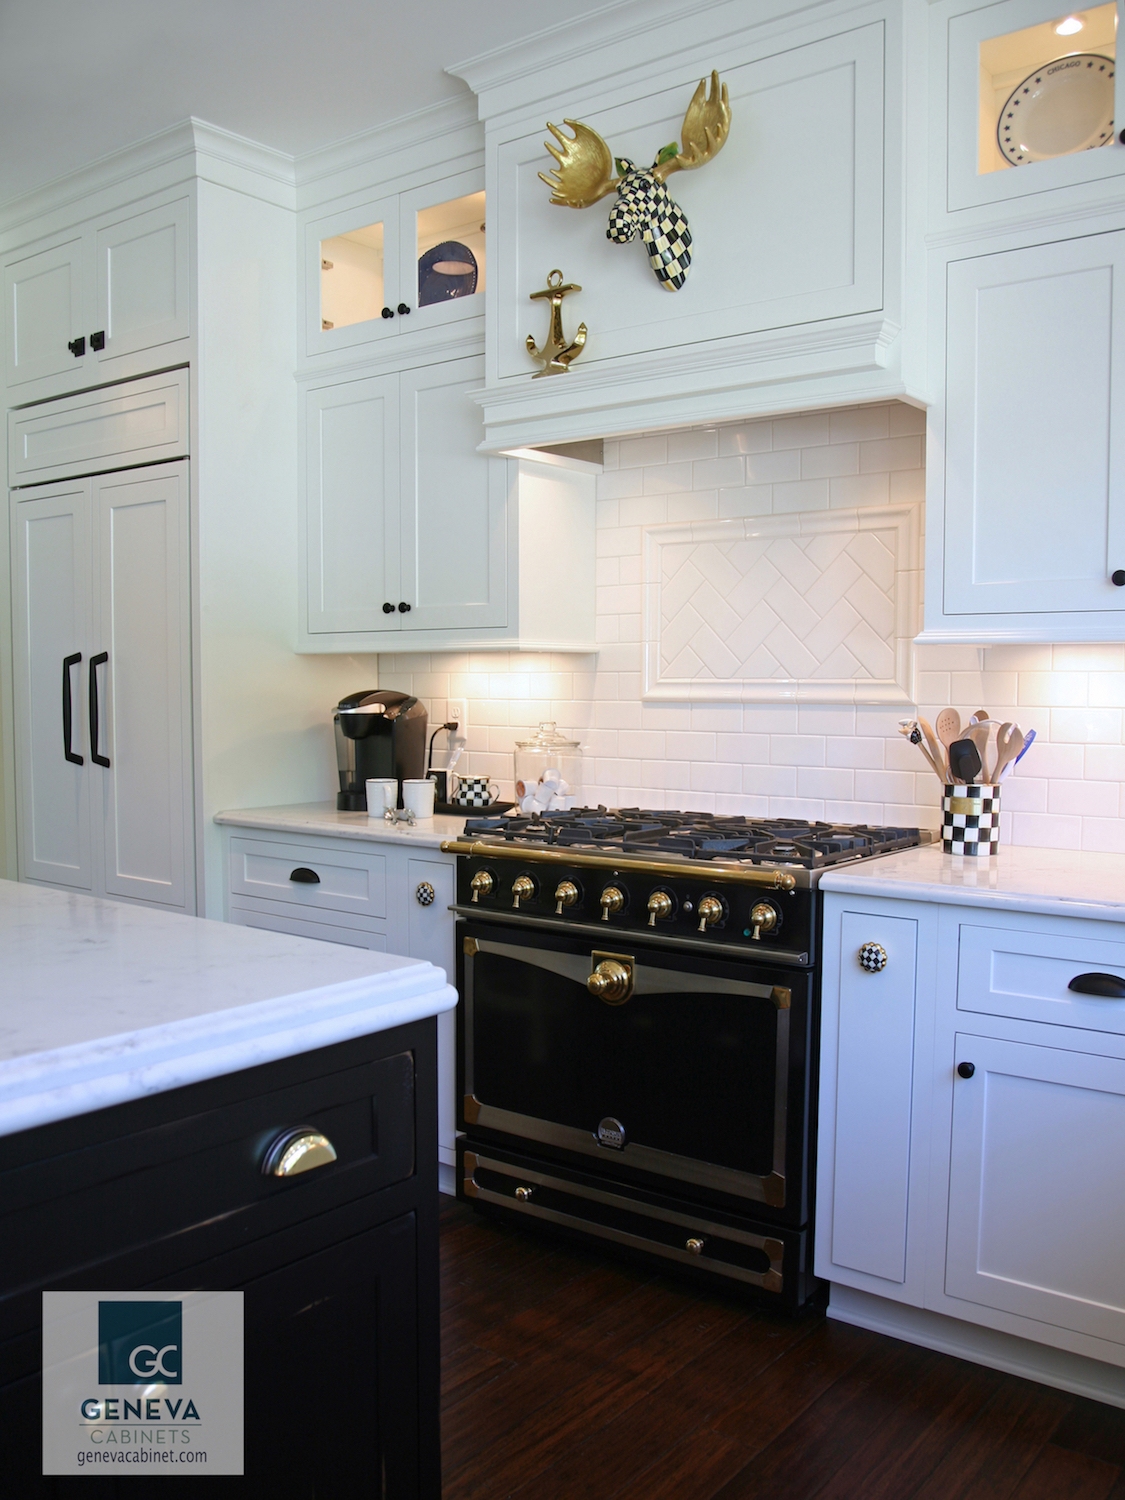 Matte Kitchen Cabinets Kitchen And Bath Trend Gold Finish Shiney And Matte